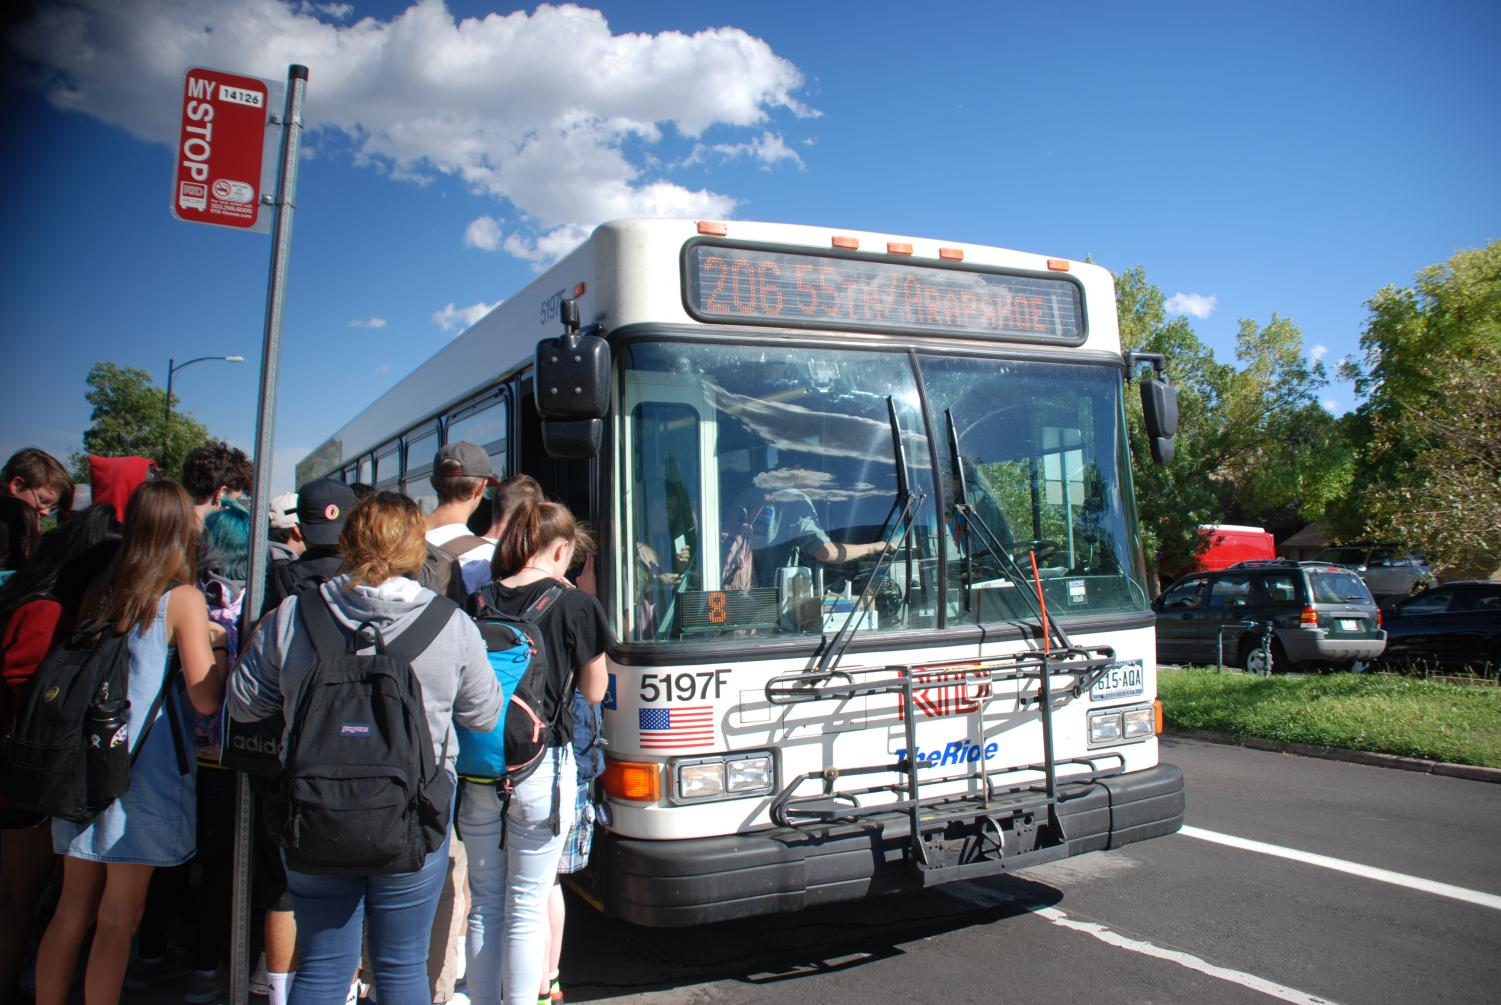 Fairview Students wait for a bus.